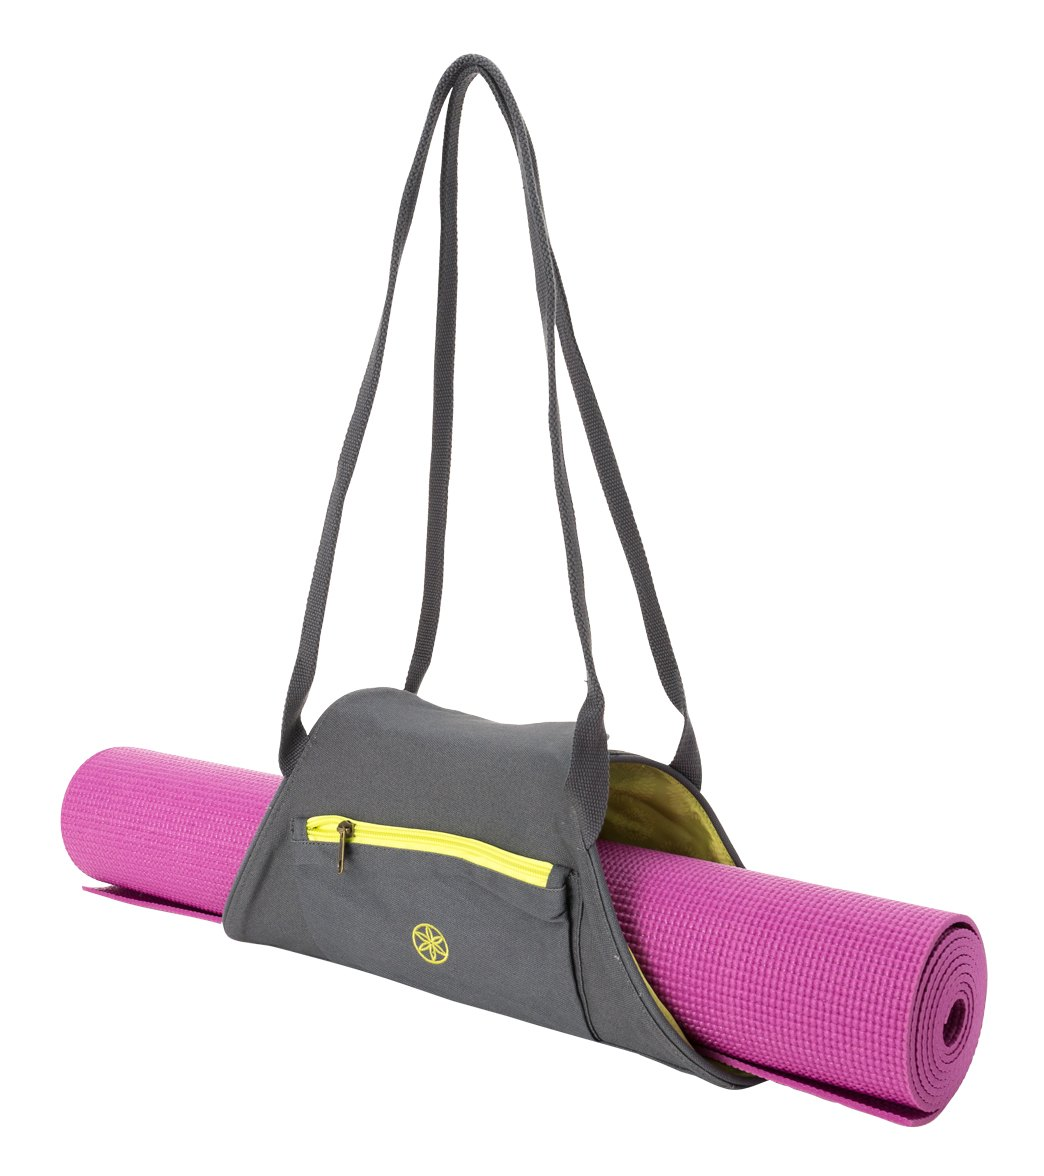 b0fa9aa898 Gaiam On-The-Go Yoga Mat Carrier at YogaOutlet.com